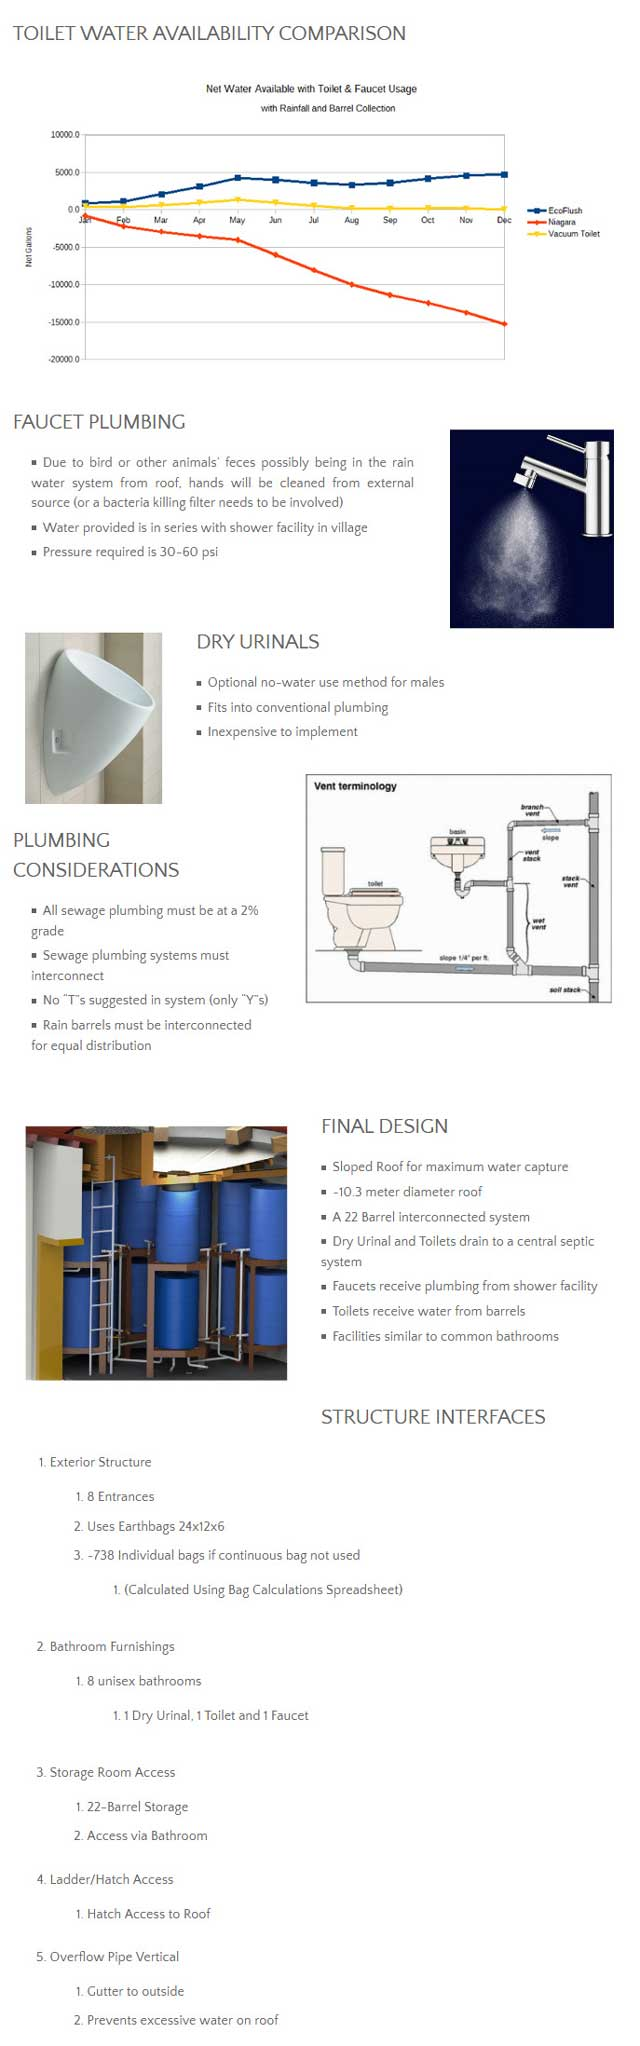 And the core teamcontinued working on theWater Recycling Net Zero Bathroom Design page. This week's focus wasadding the final text and images to the page. We'd say we're now about 40% complete with the page.